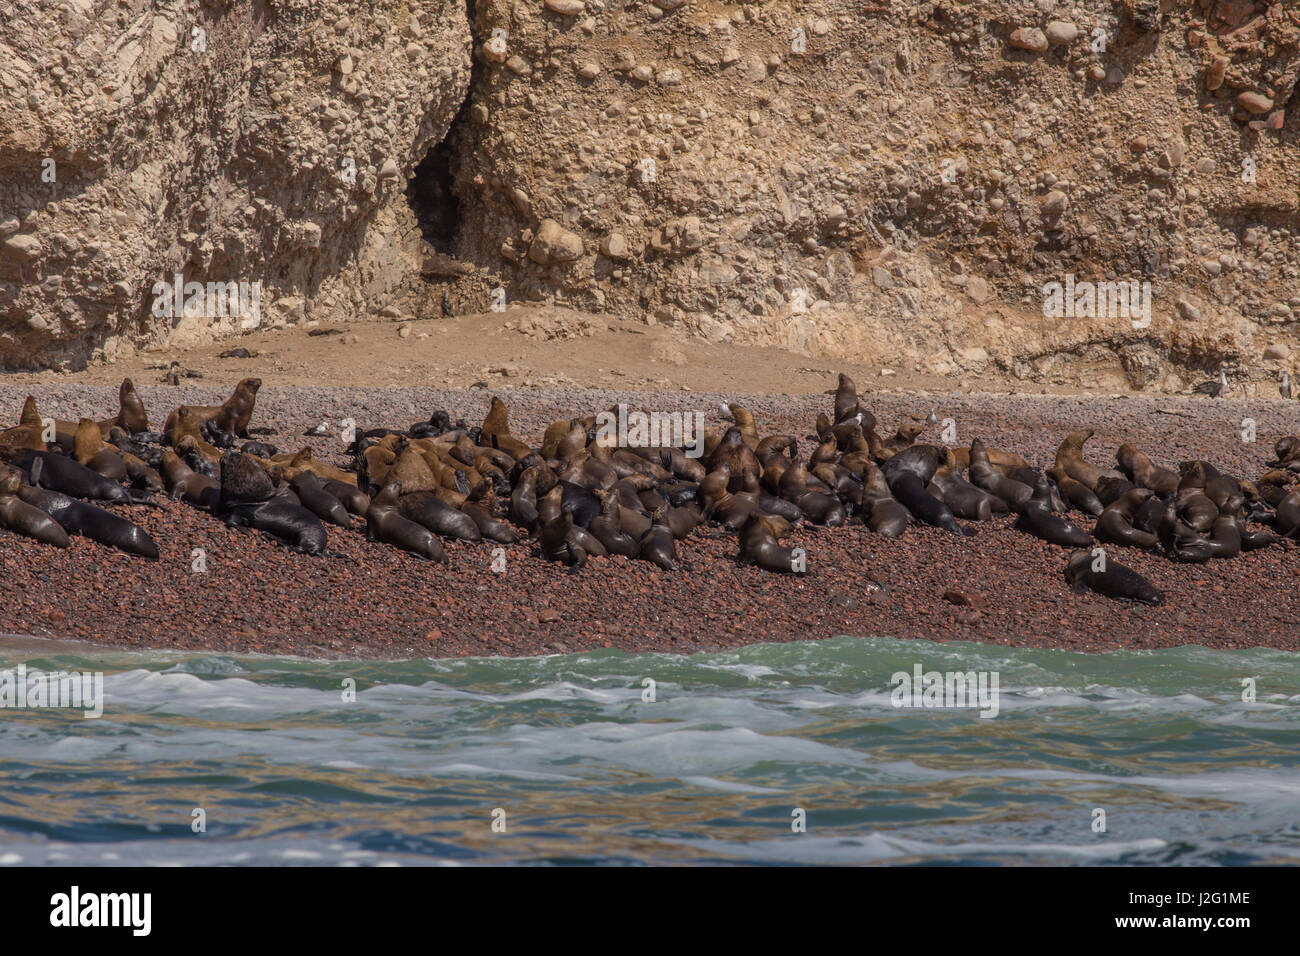 Sea lions on the Ballestas Islands (Islas Ballestas) in the Paracas National Reserve in Peru, South America - Stock Image